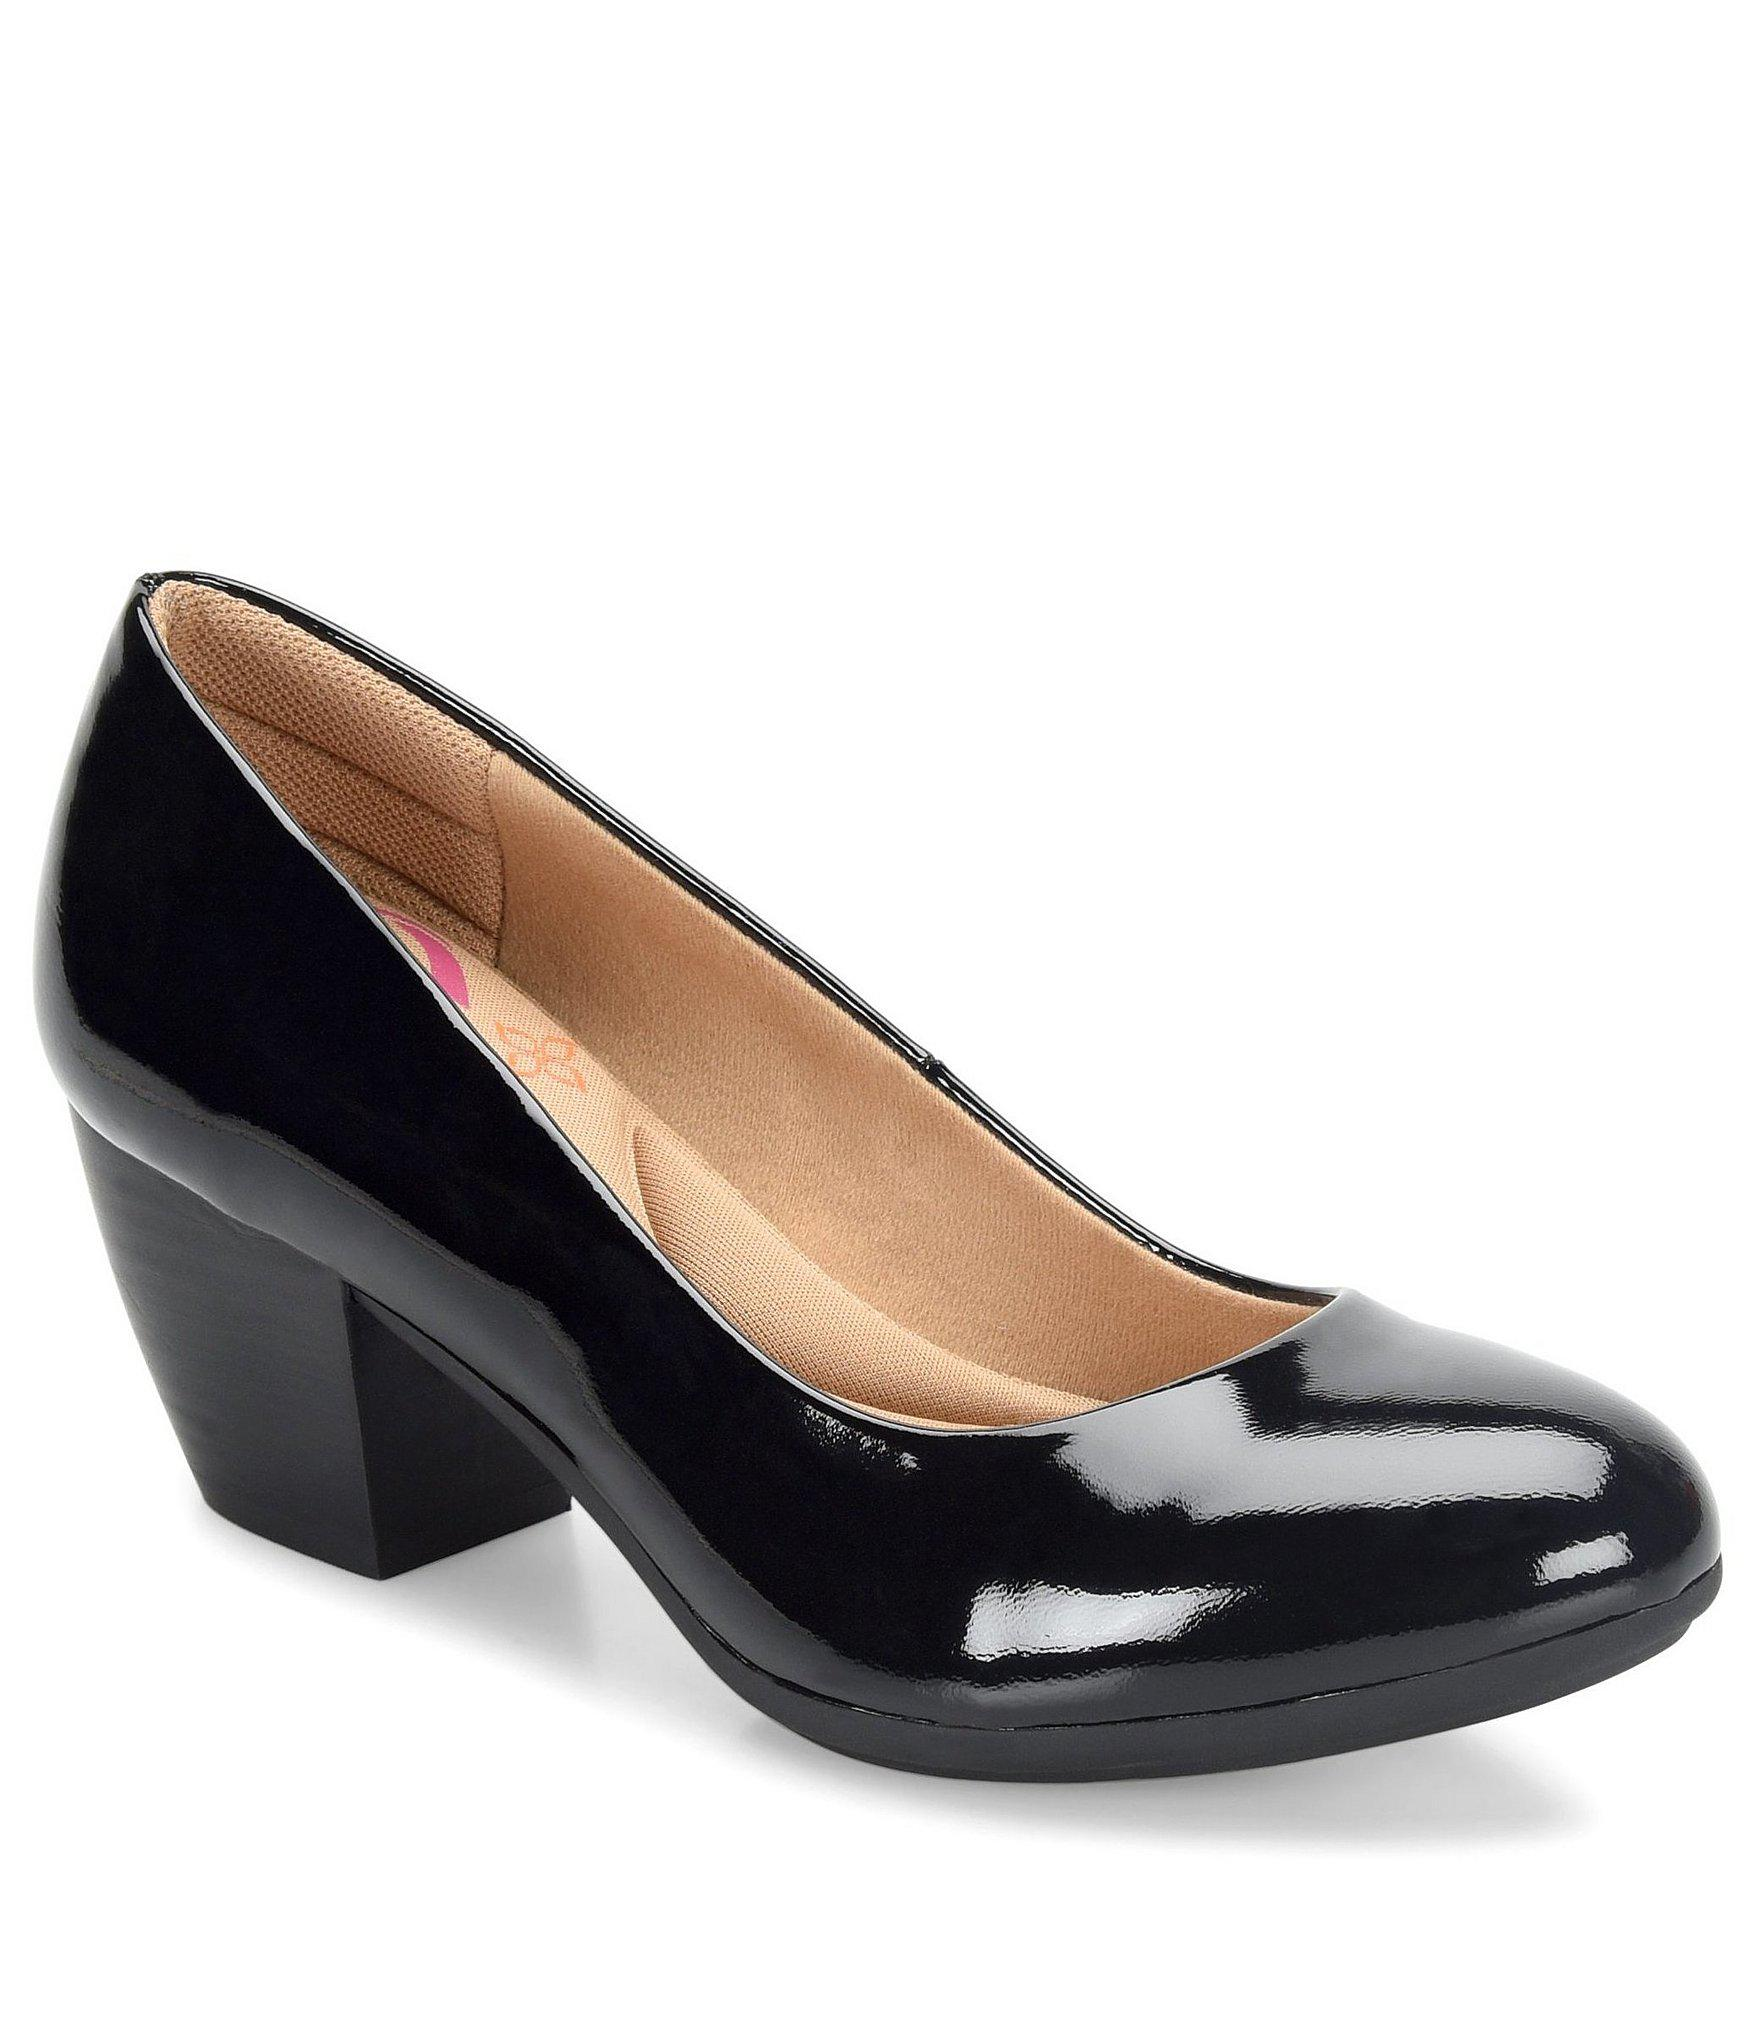 e8ac0150c4c7 Lyst - Comfortiva Amora Patent Leather Pumps in Black